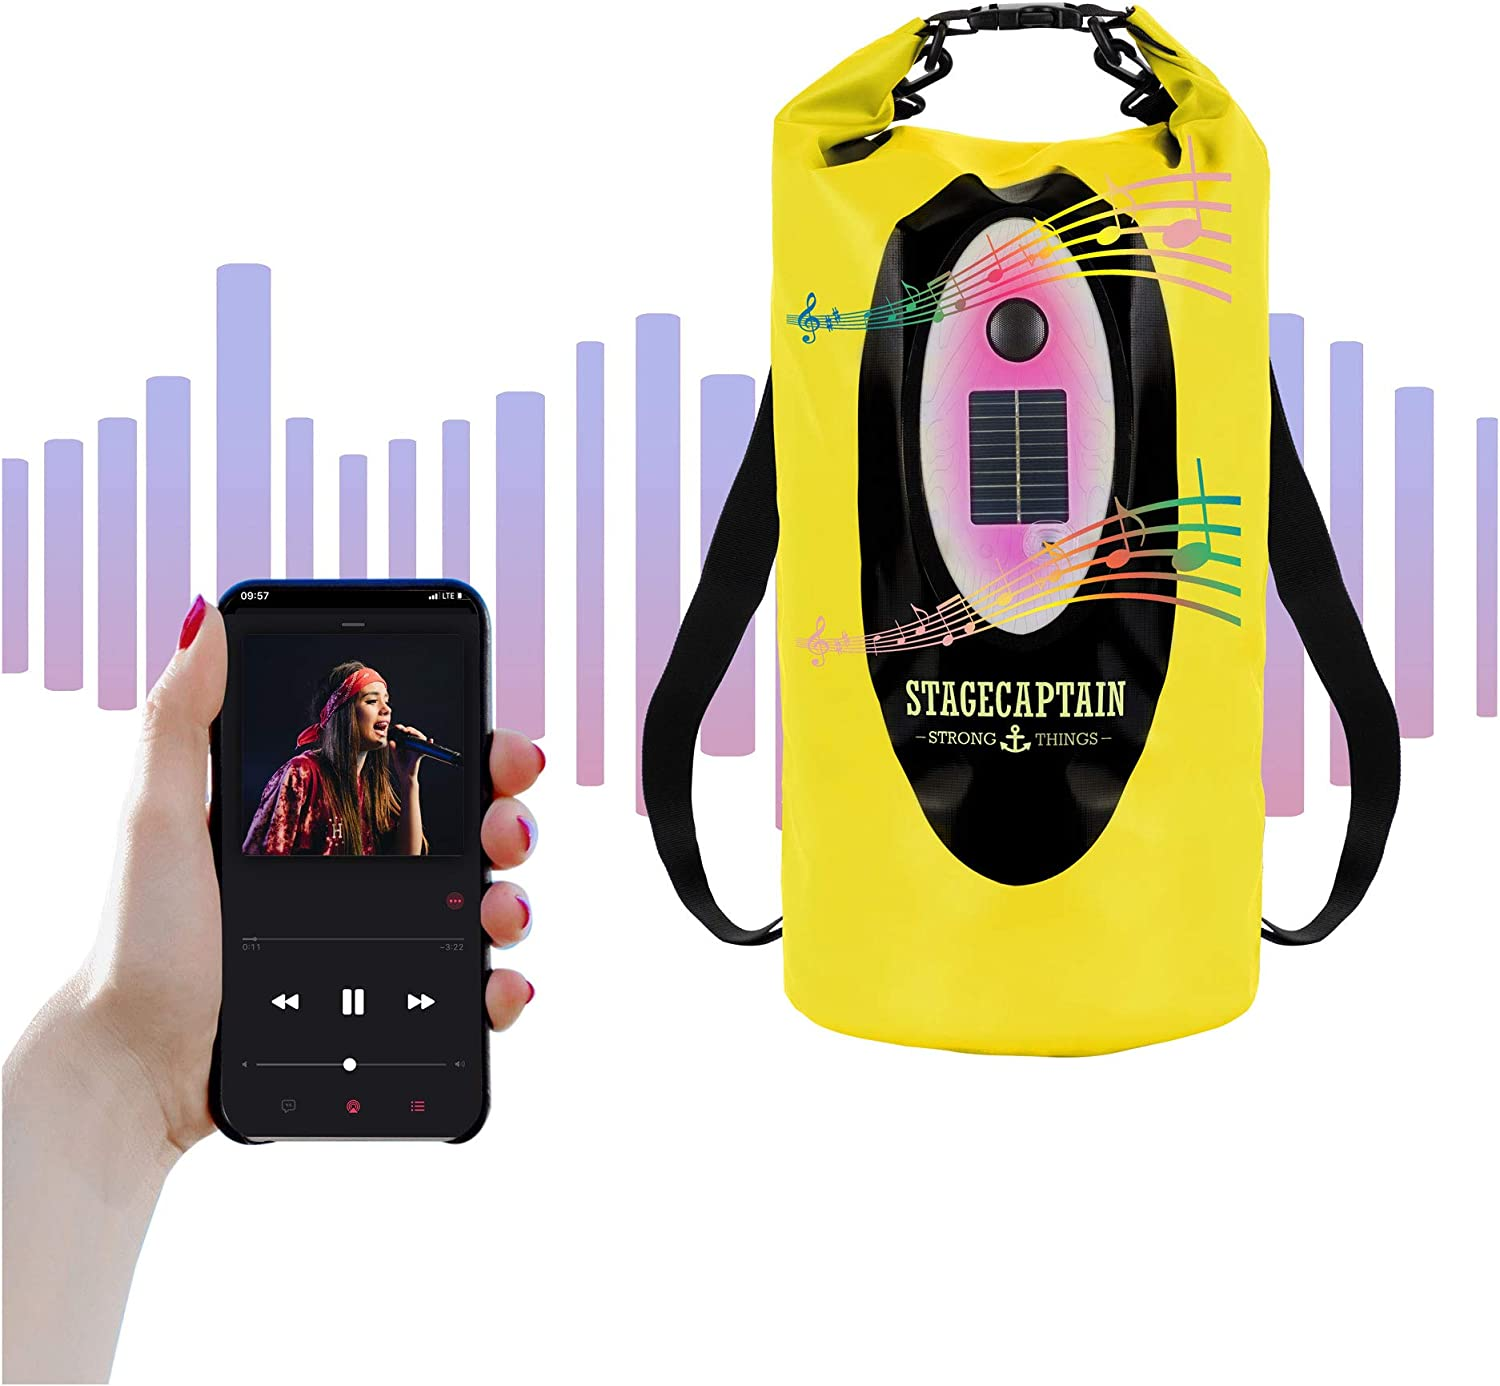 Stagecaptain DB-20G 20L Dry Bag Waterproof Bag for Festivals Includes 2 Backpack Straps Integrated Bluetooth Speaker with LED Light SUP Practical Solar Panel Camping /& Beach